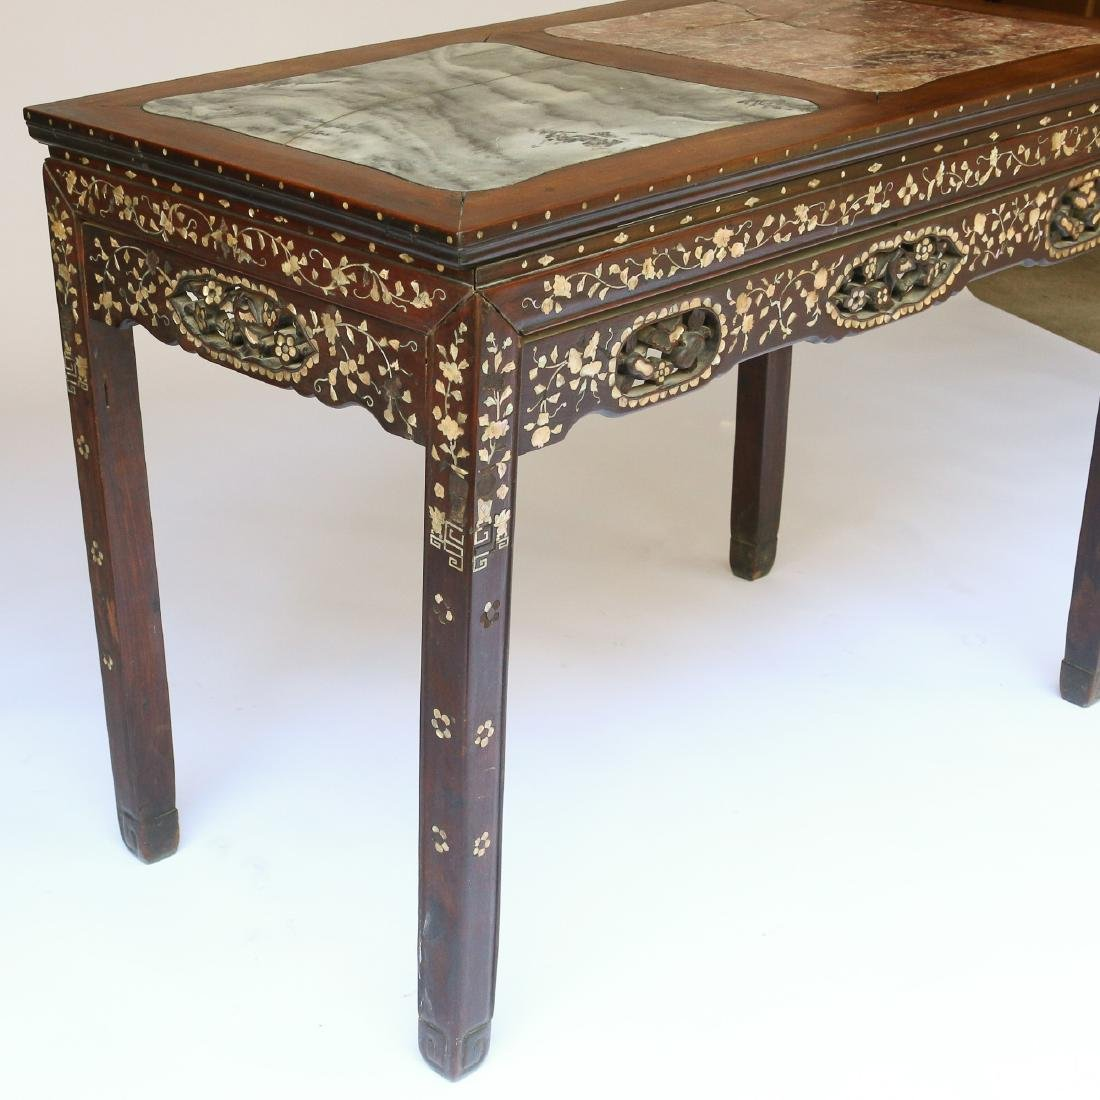 CHINESE MOTHER-OF-PEARL INLAID WRITING TABLE - 4